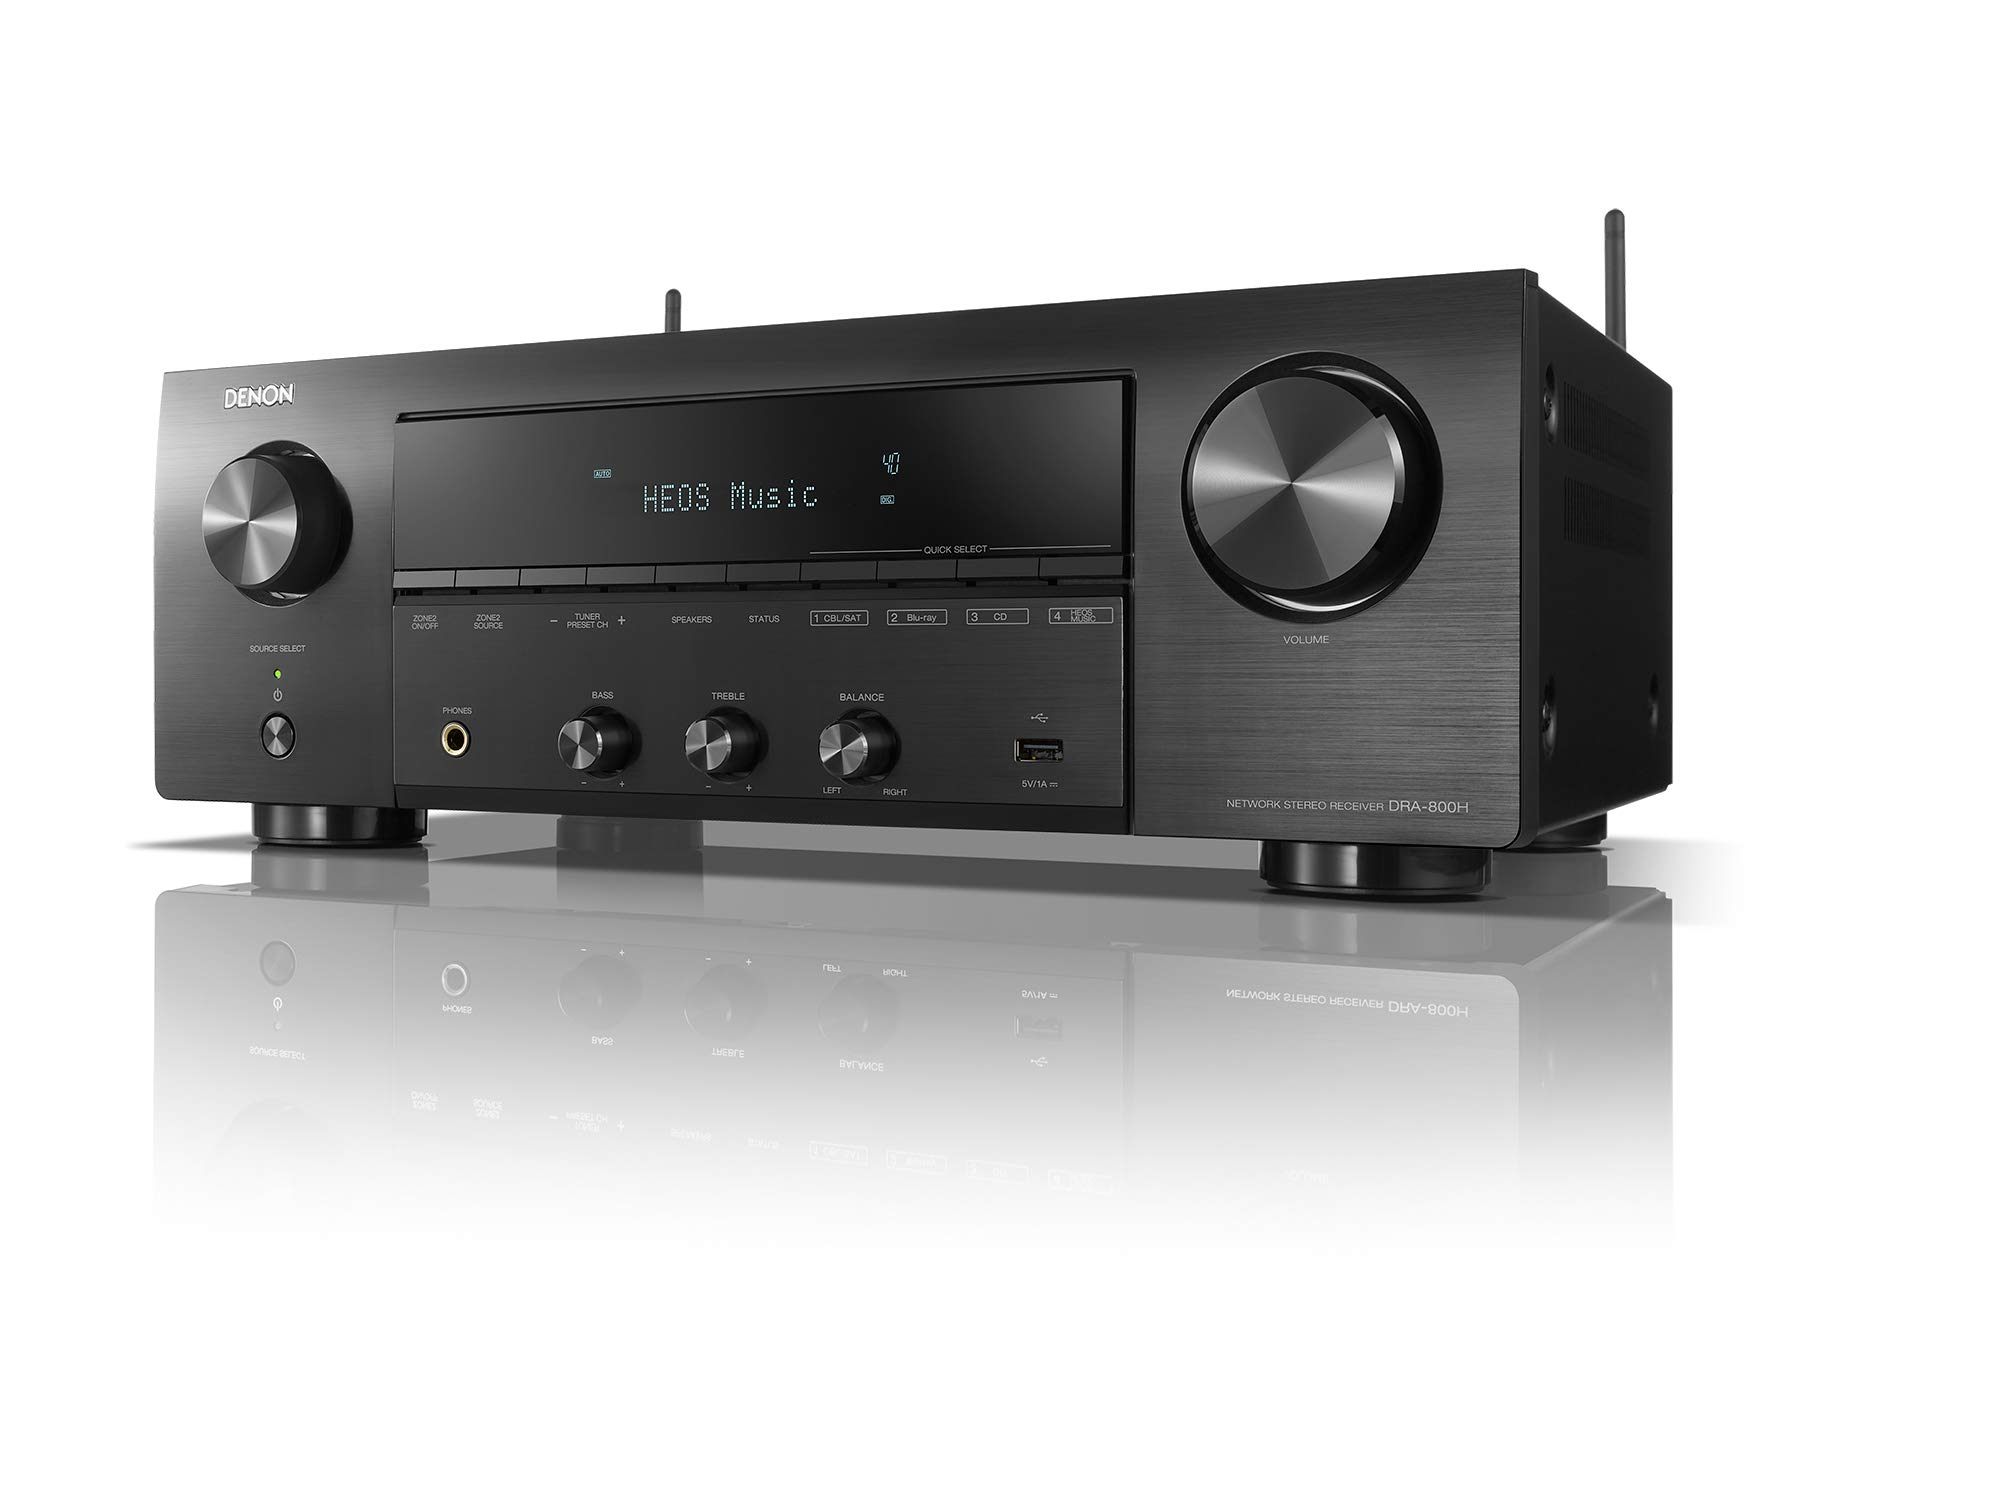 Denon DRA 800H Amplification Processing Compatible